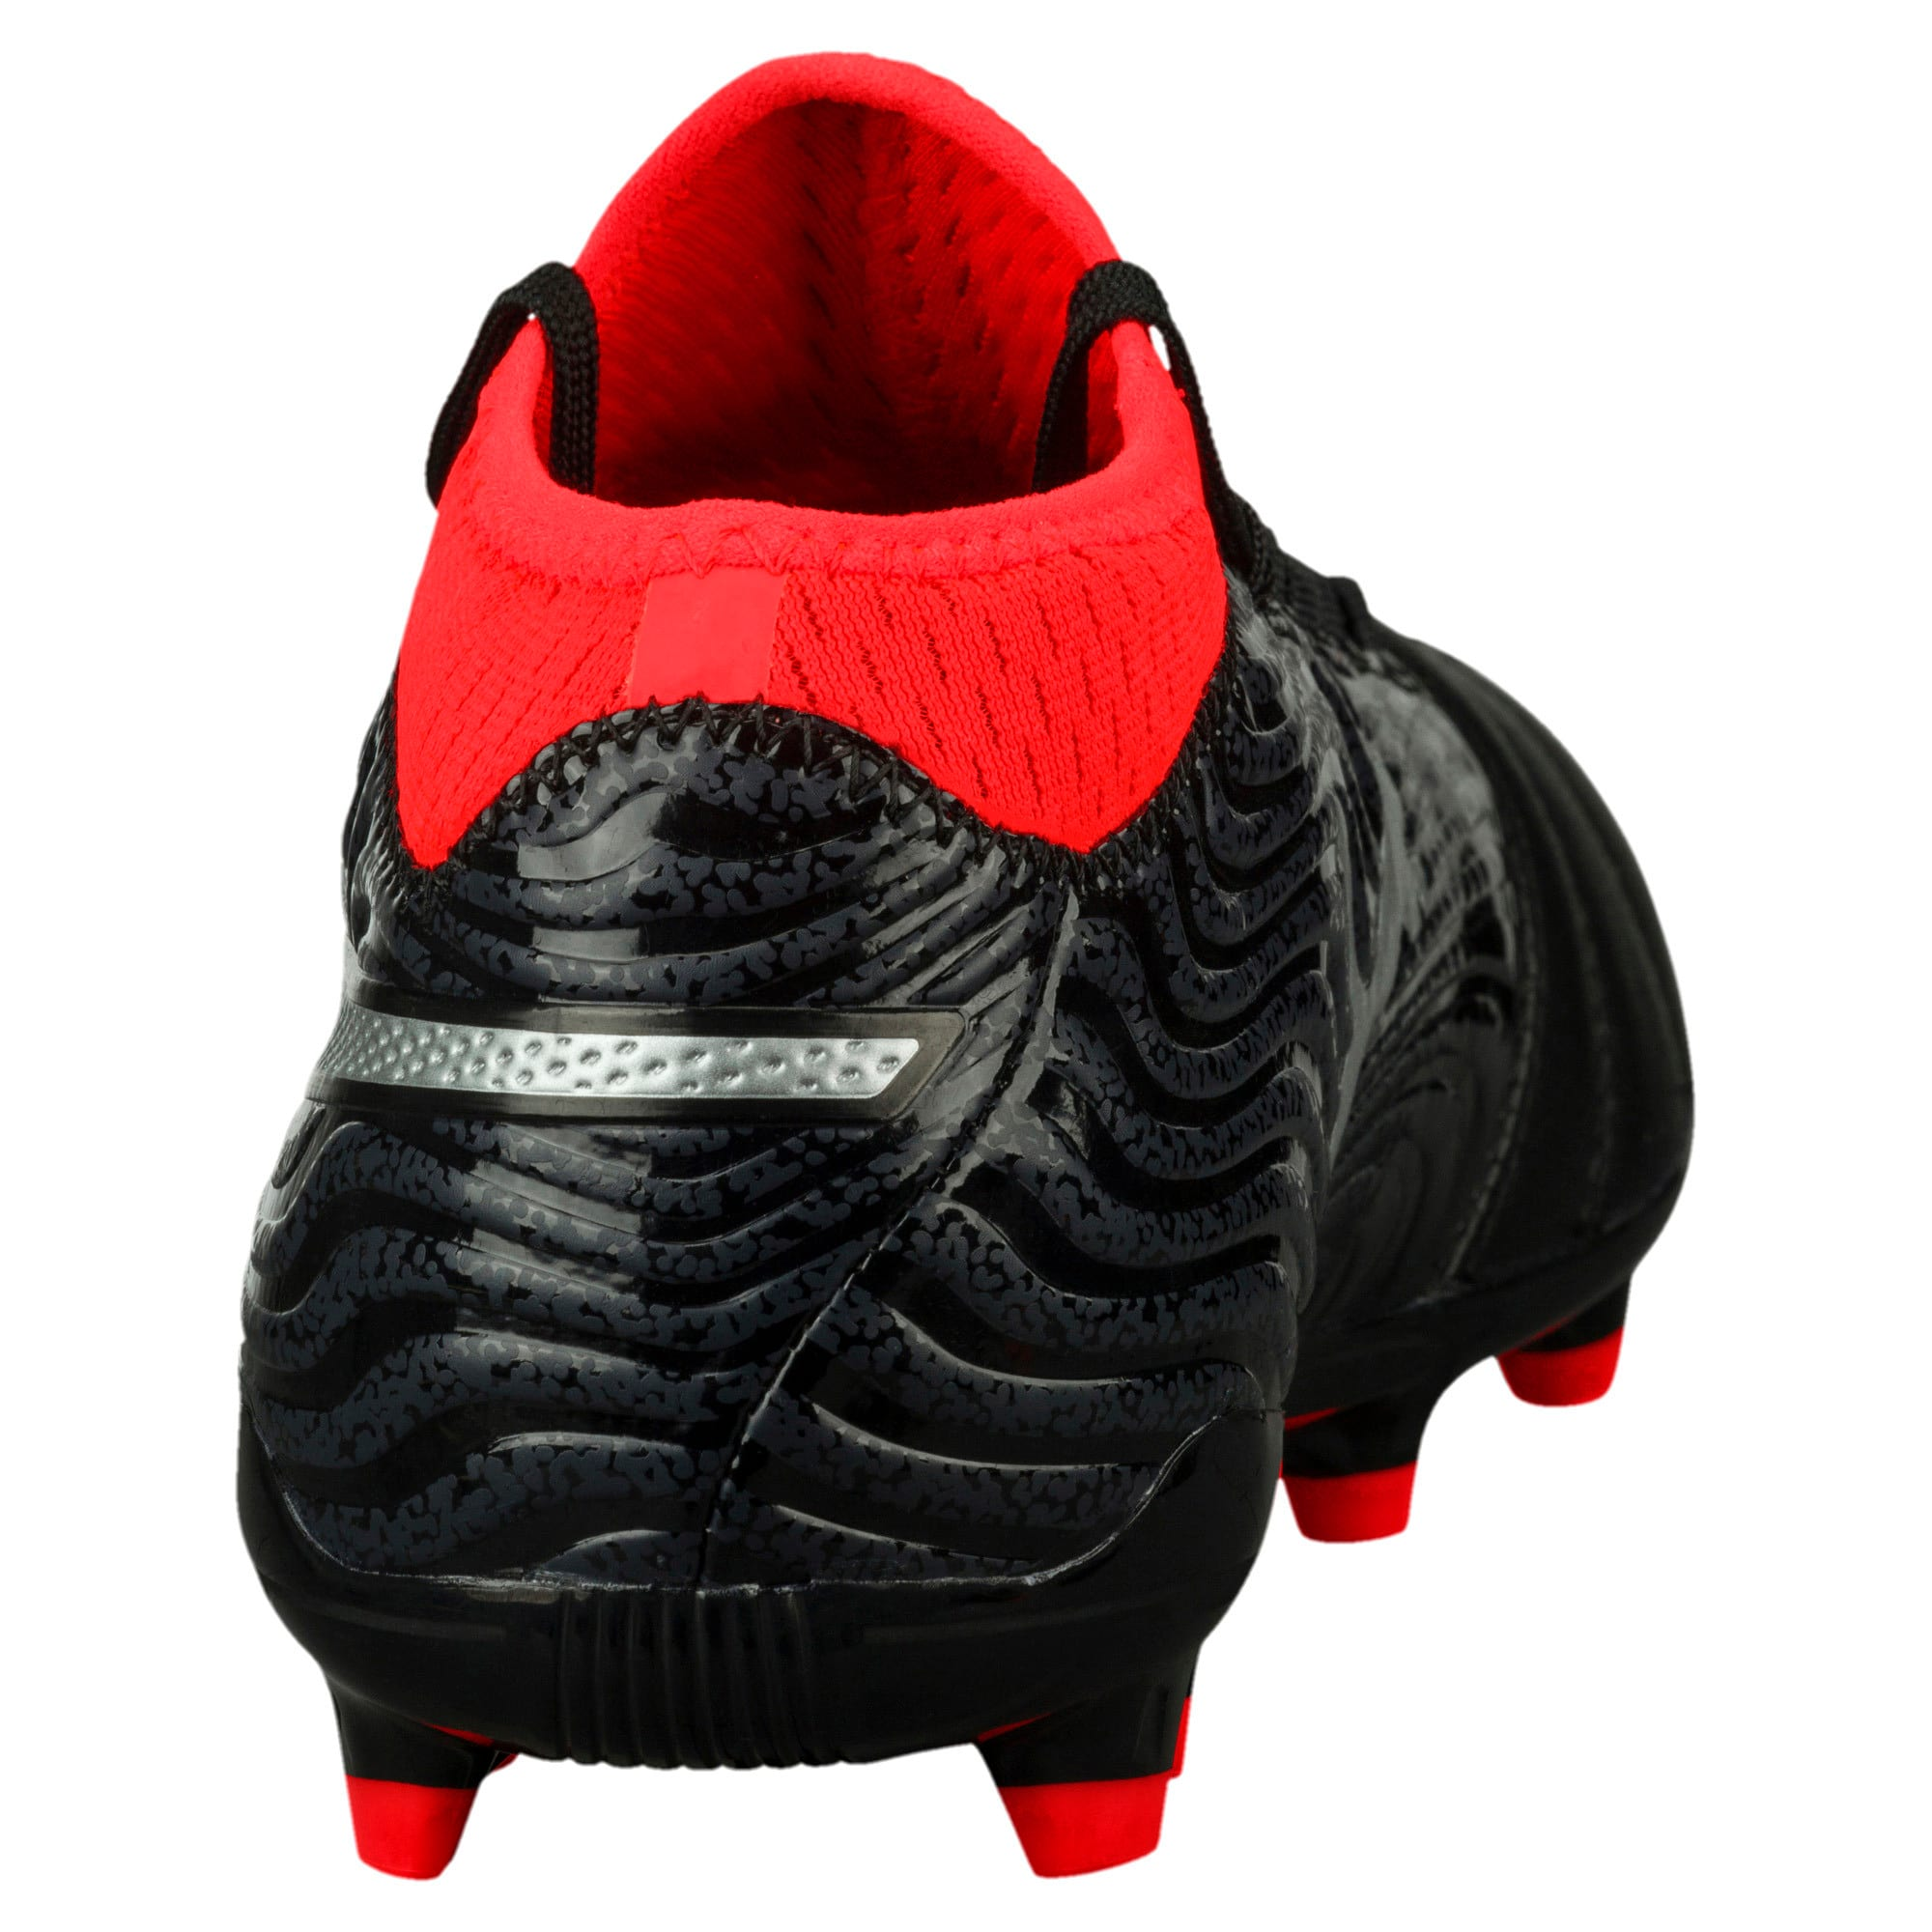 Thumbnail 3 of ONE 18.3 FG Men's Football Boots, Black-Silver-Red, medium-IND